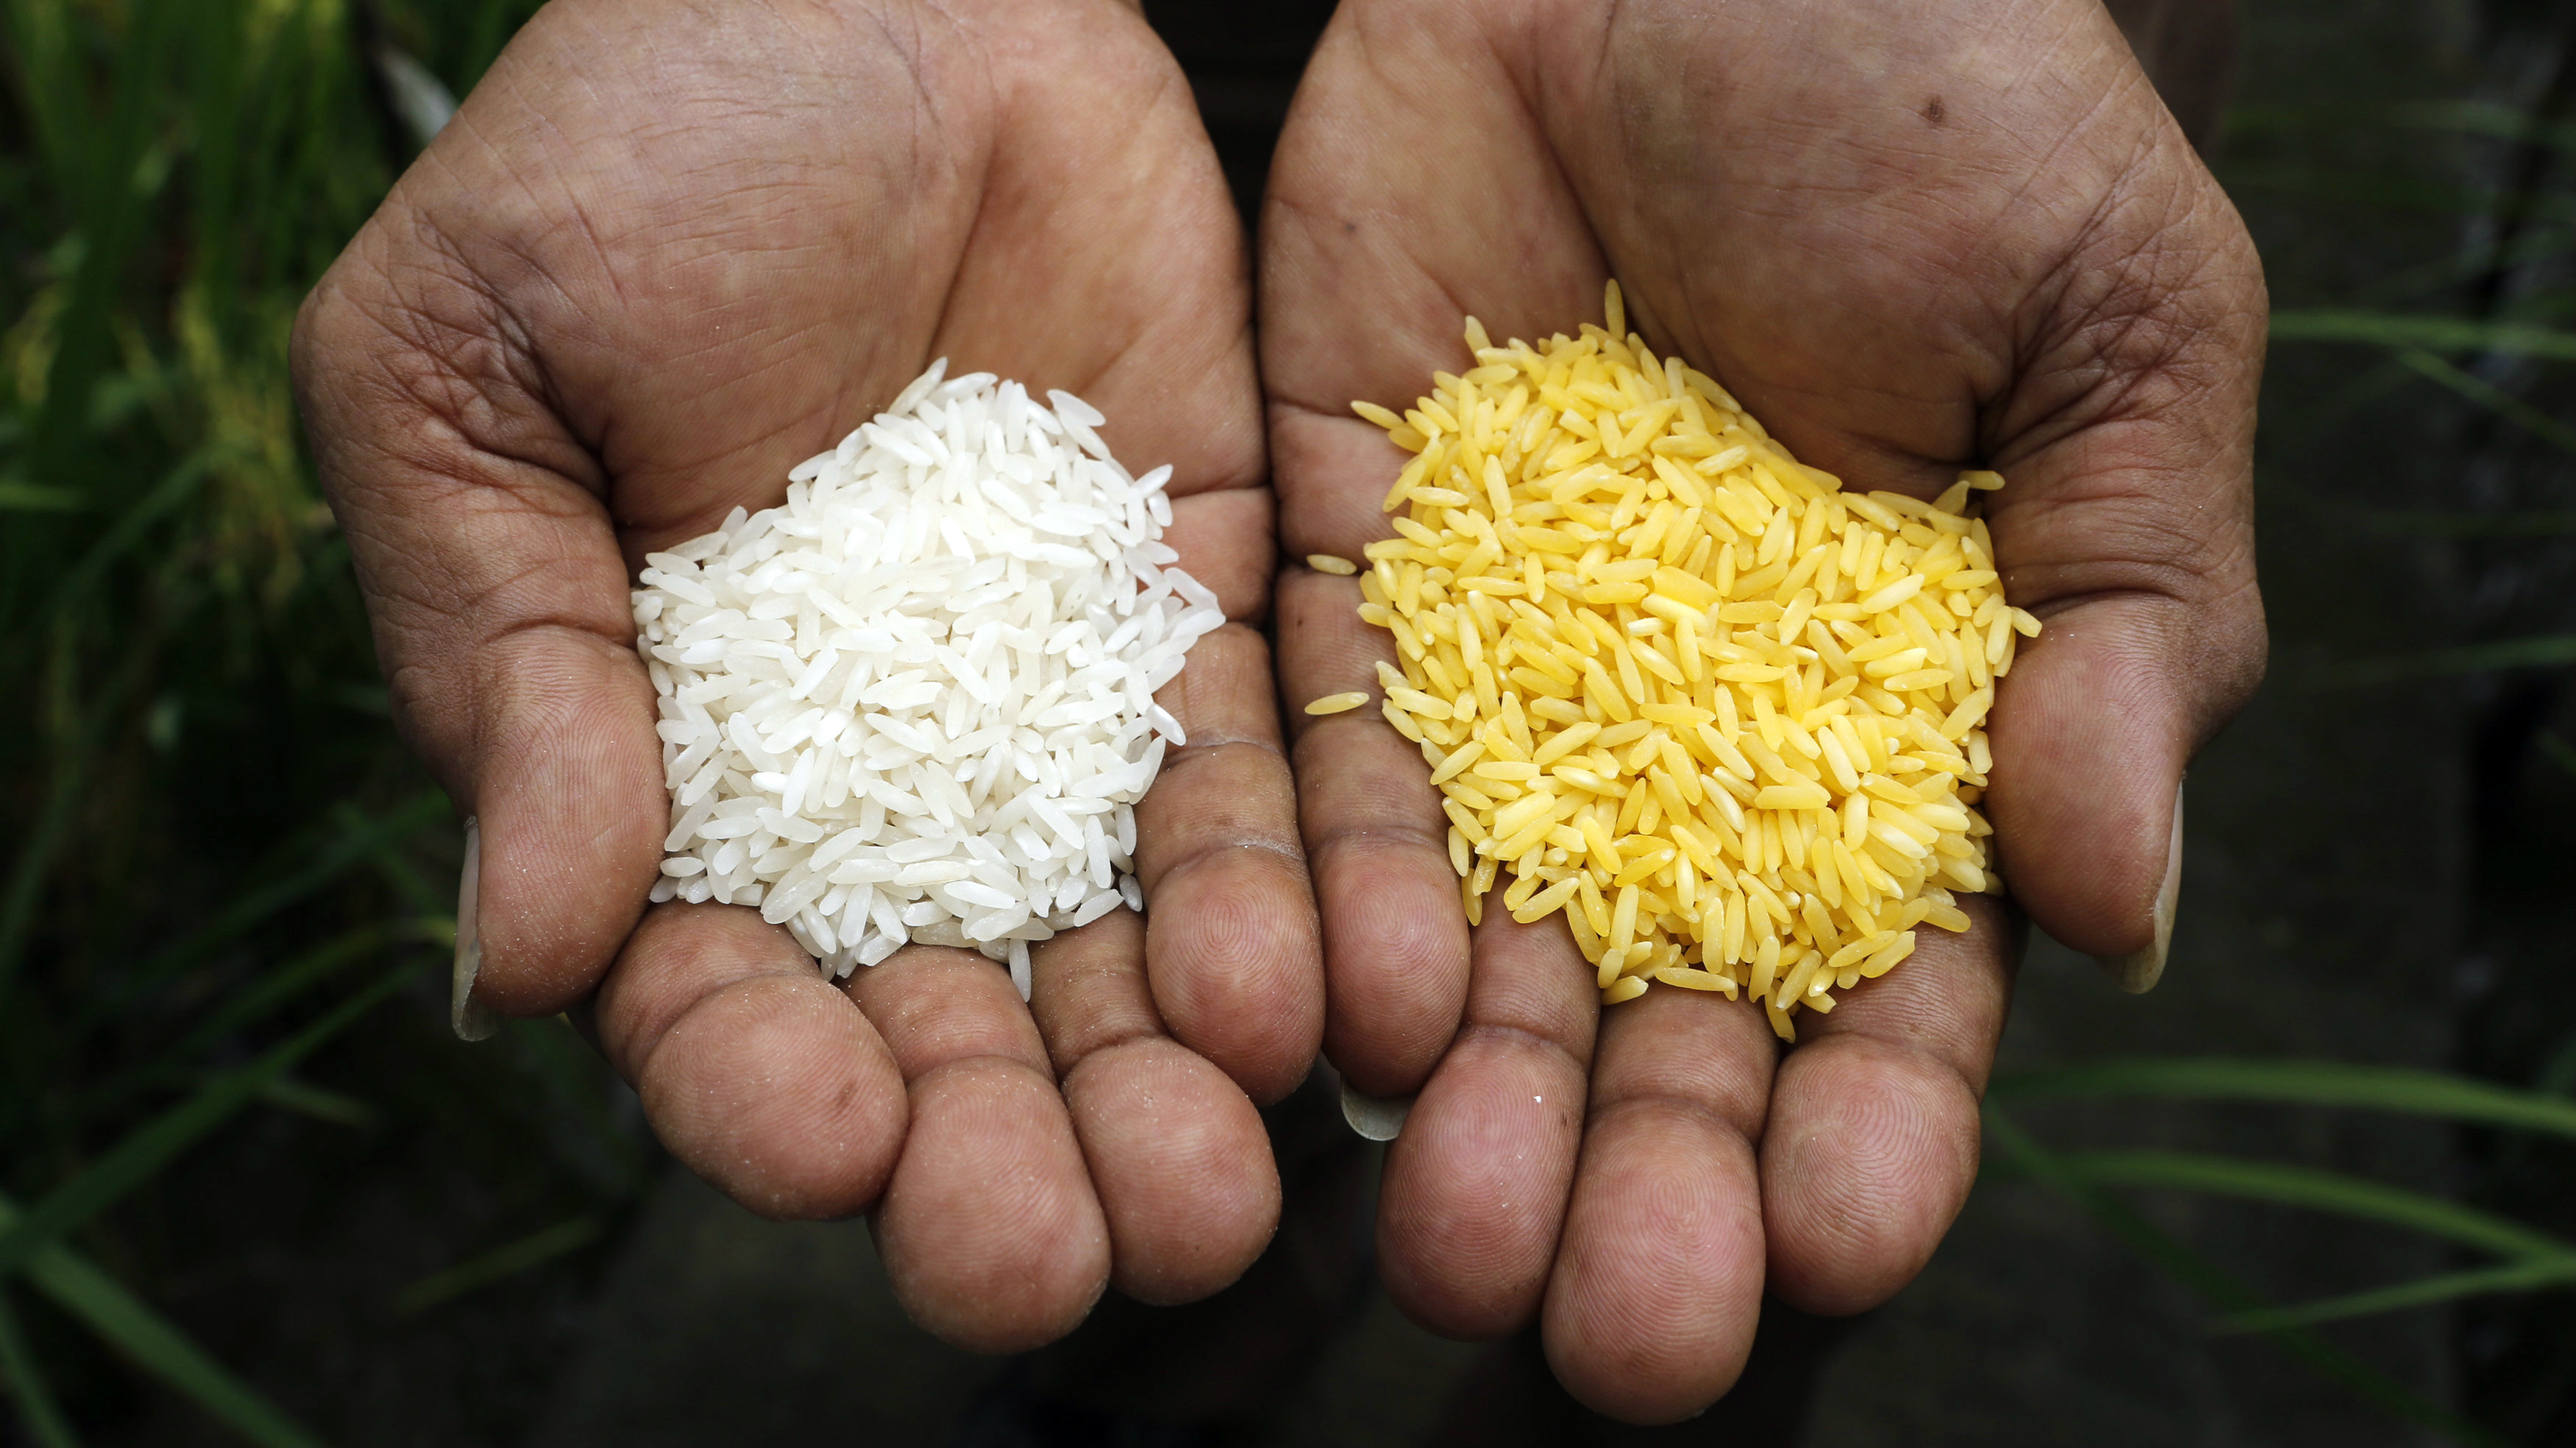 golden-rice-syngenta-monsanto 2